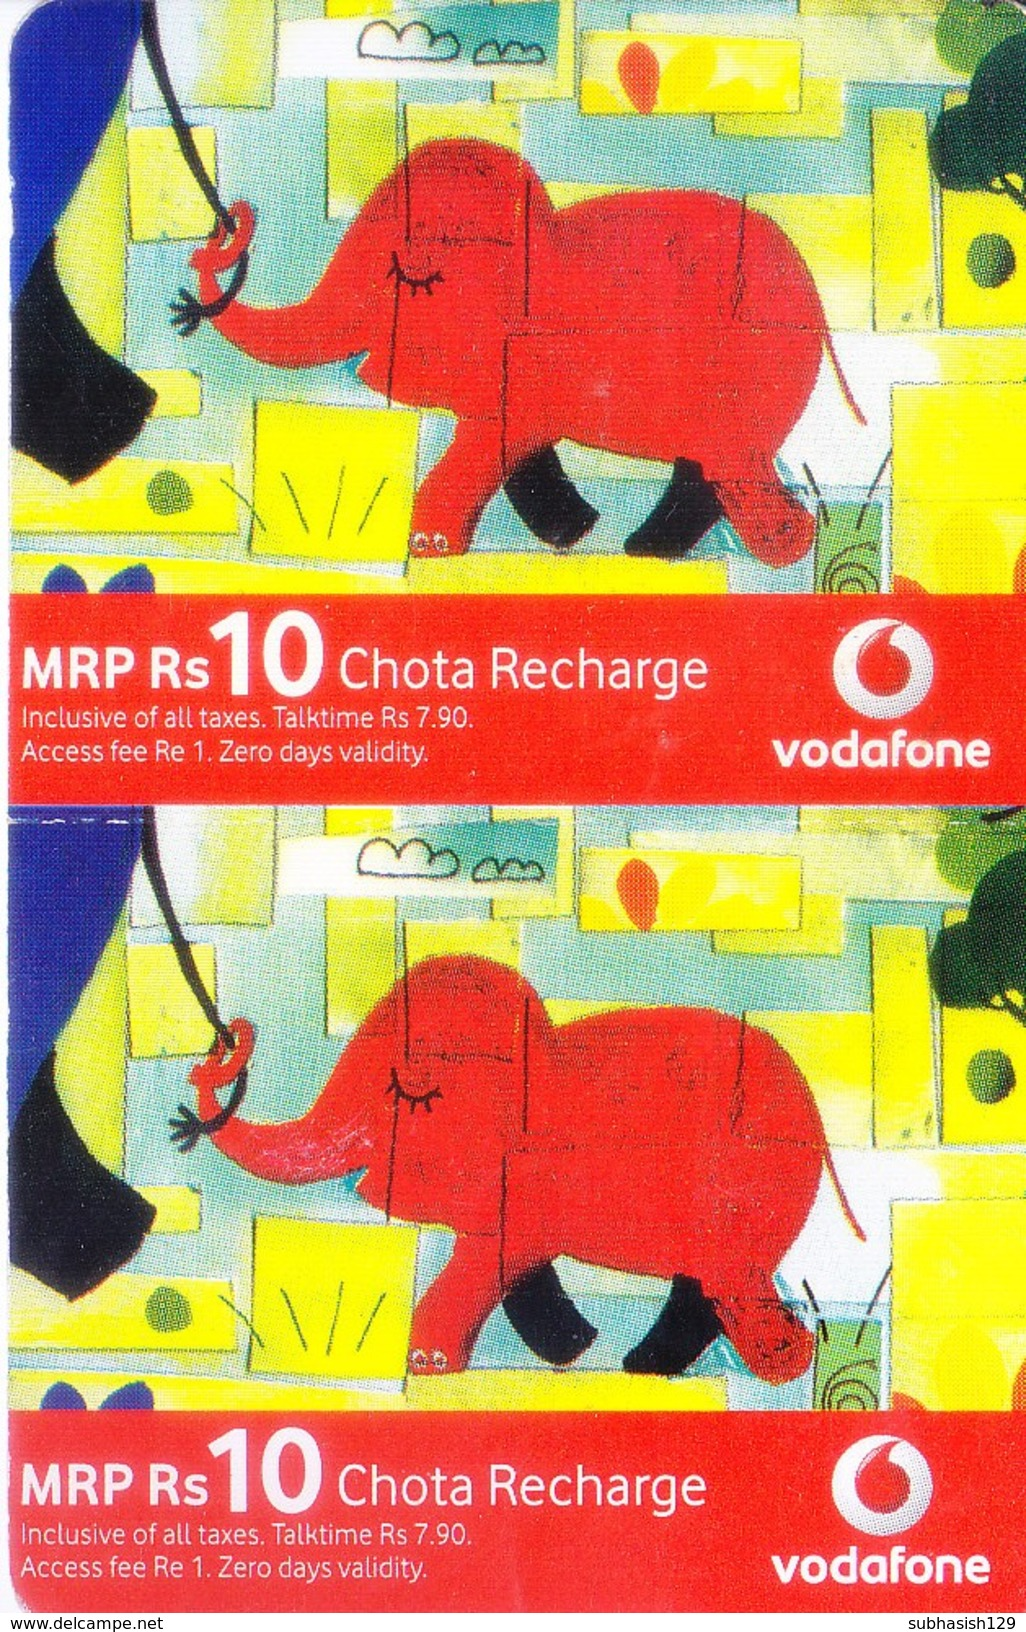 MOBILE / TELEPHONE CARD, INDIA - VODAFONE RS. 10 CHOTA RECHARGE, 2 NOS. CARD - Magnets